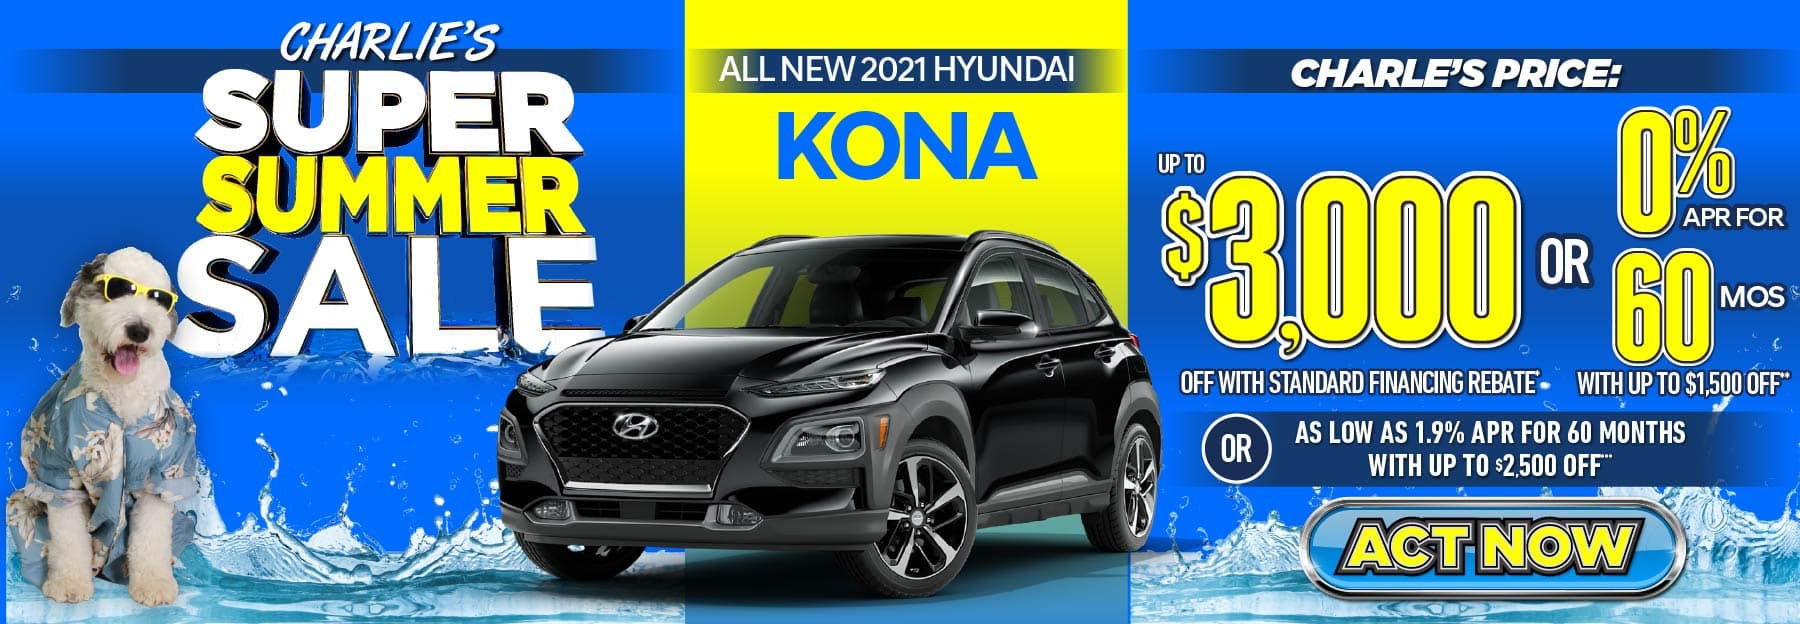 2021 Kona up to $3000 off with standard financing rebate or 0% APR for 60 months with up to $1500 off or as low as 1.9% APR for 60 months with up to $2500 off. Act Now.